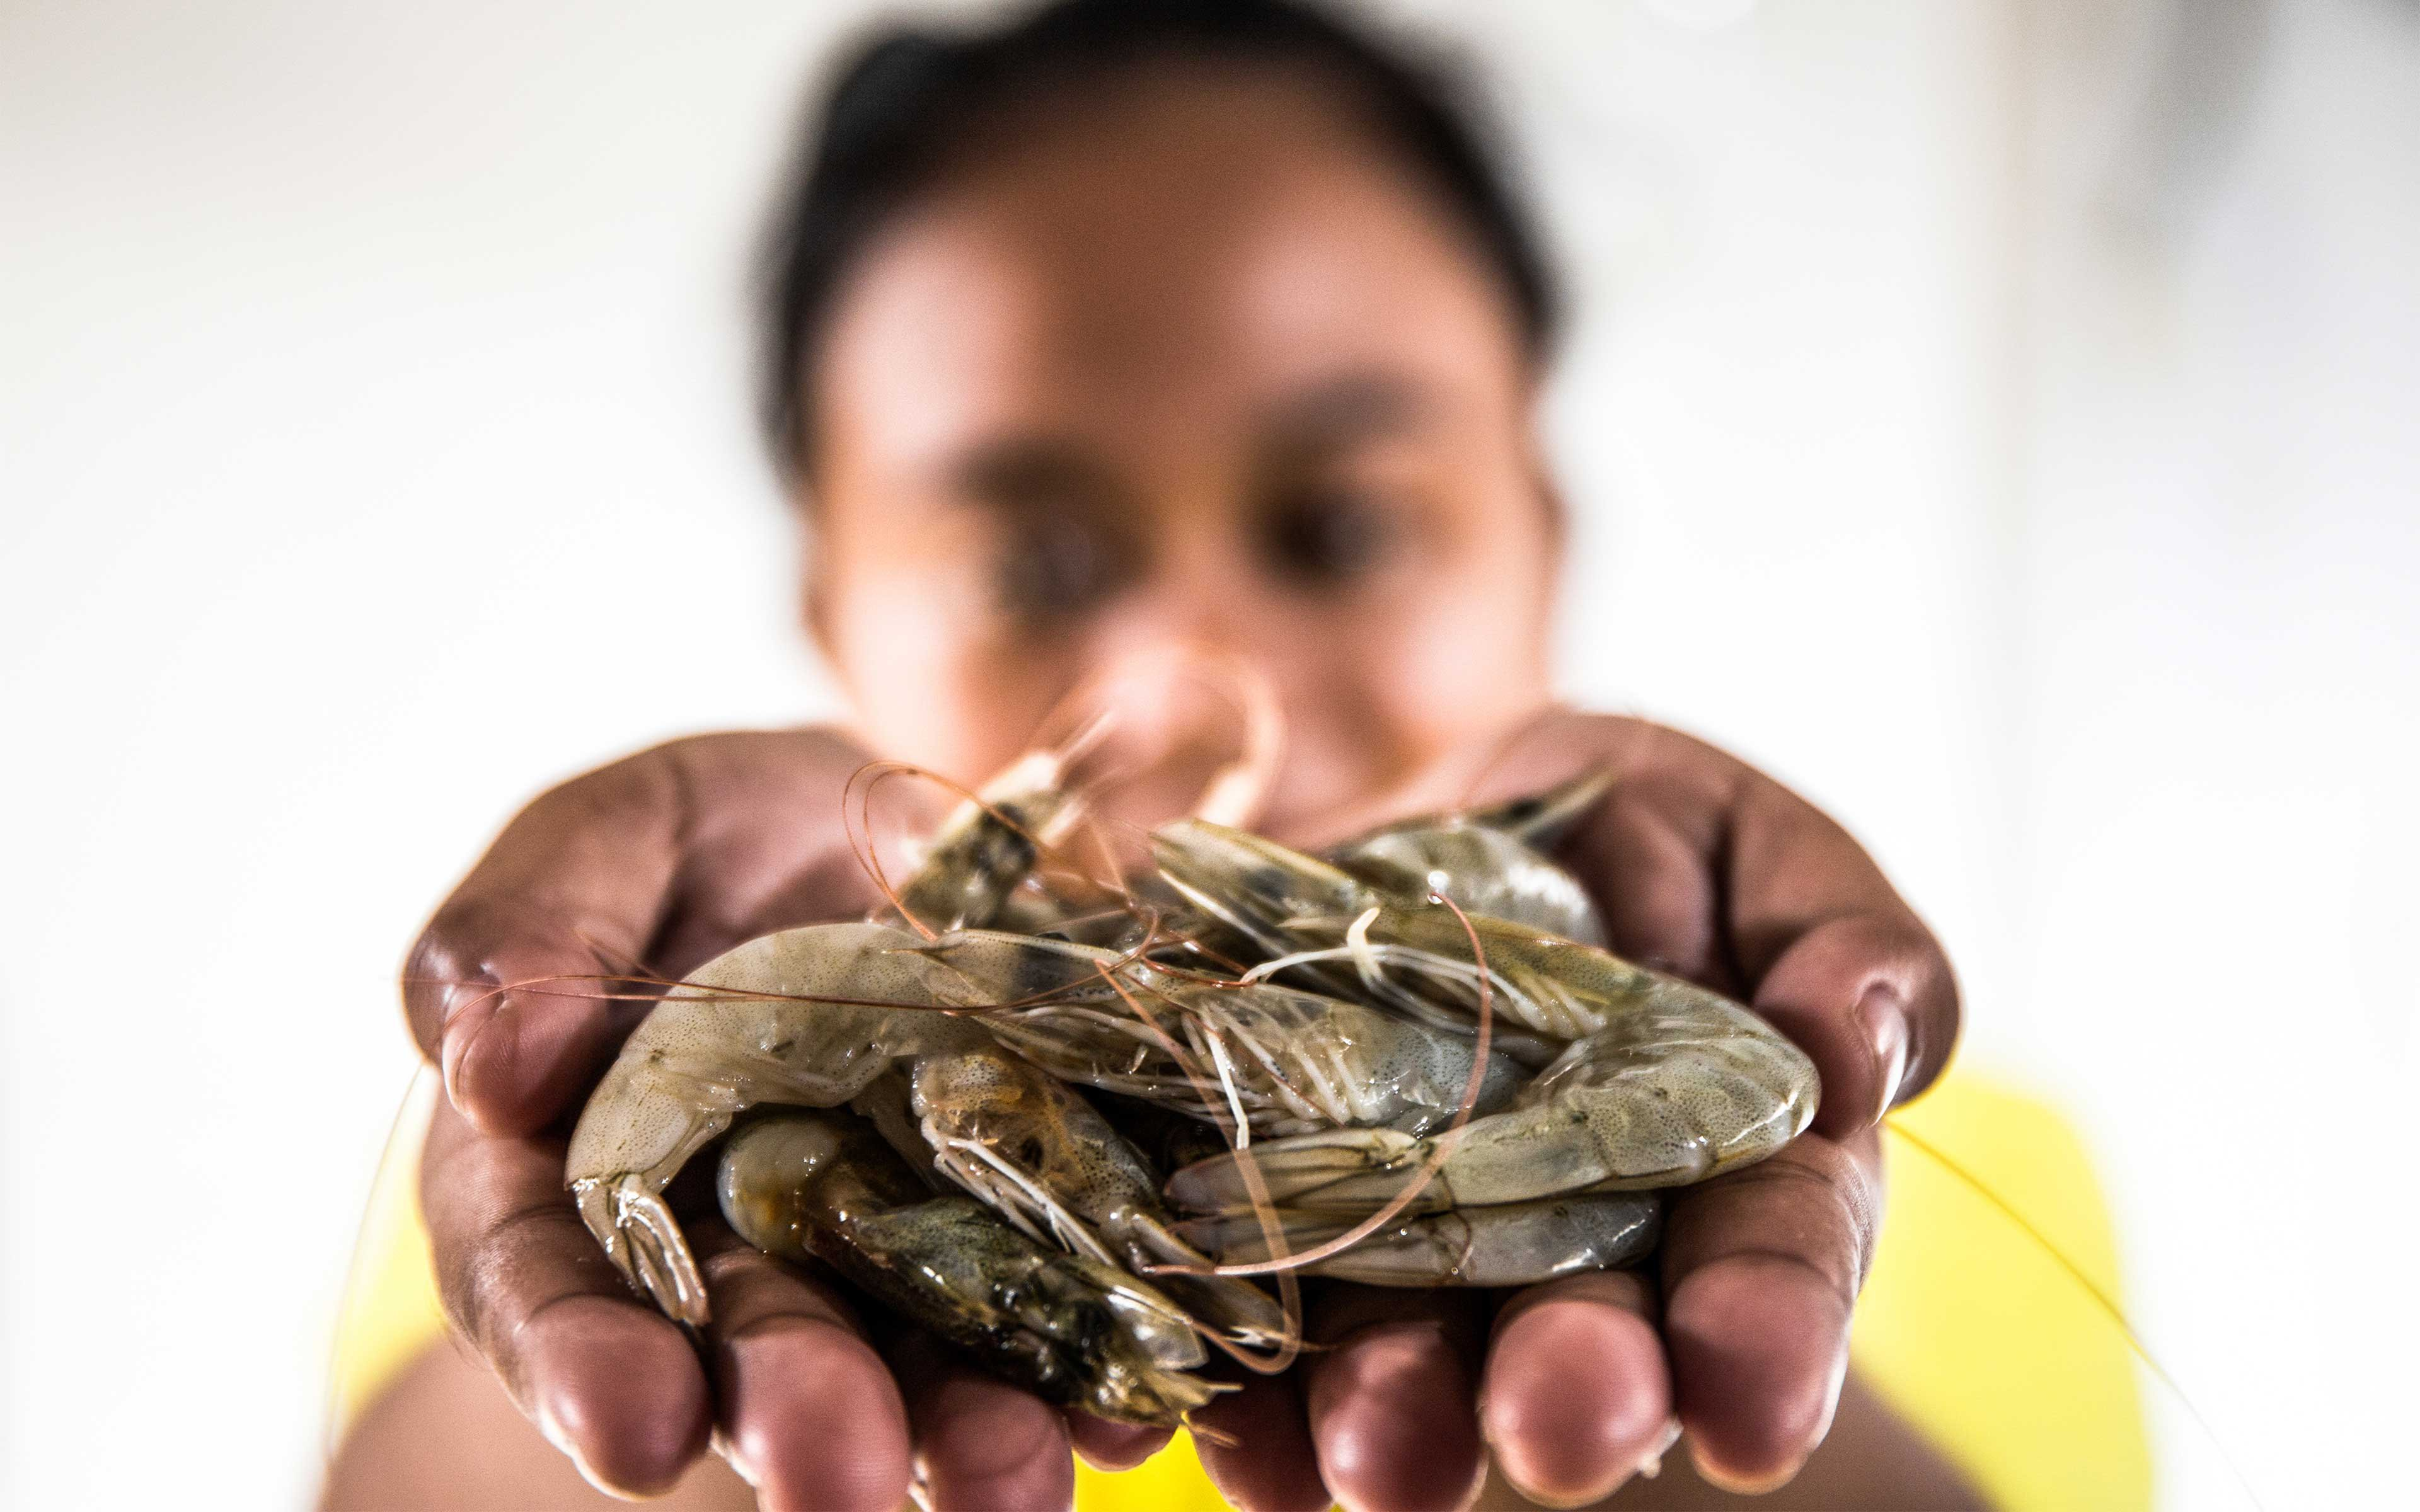 Melati worked at a shrimp processing plant in Indonesia to earn money for college. She found it difficult to peel 600 shrimp an hour, and the living and working conditions to be unacceptably dirty and dangerous.